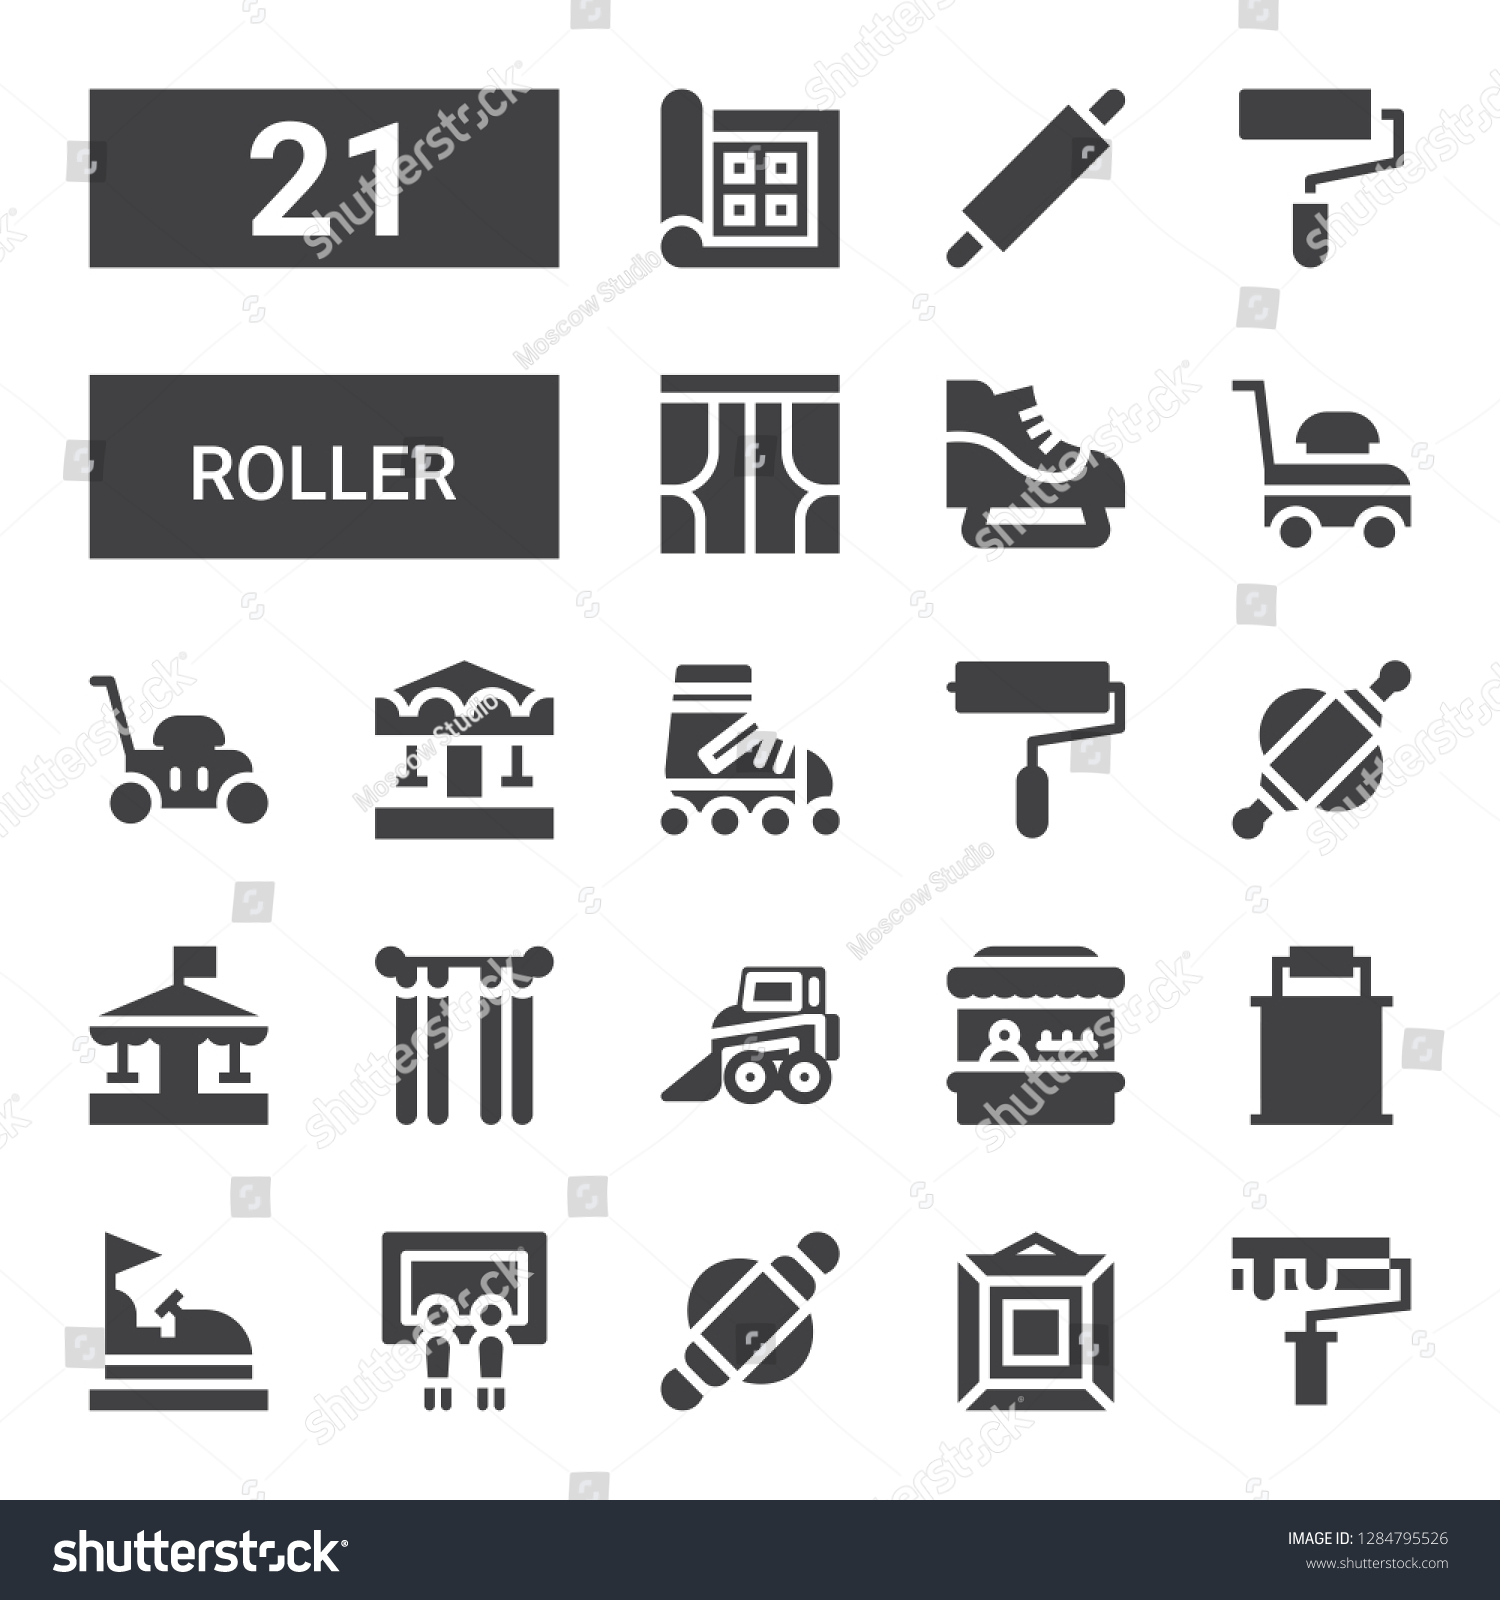 Roller Icon Set Collection 21 Filled Stock Vector Royalty Free 1284795526